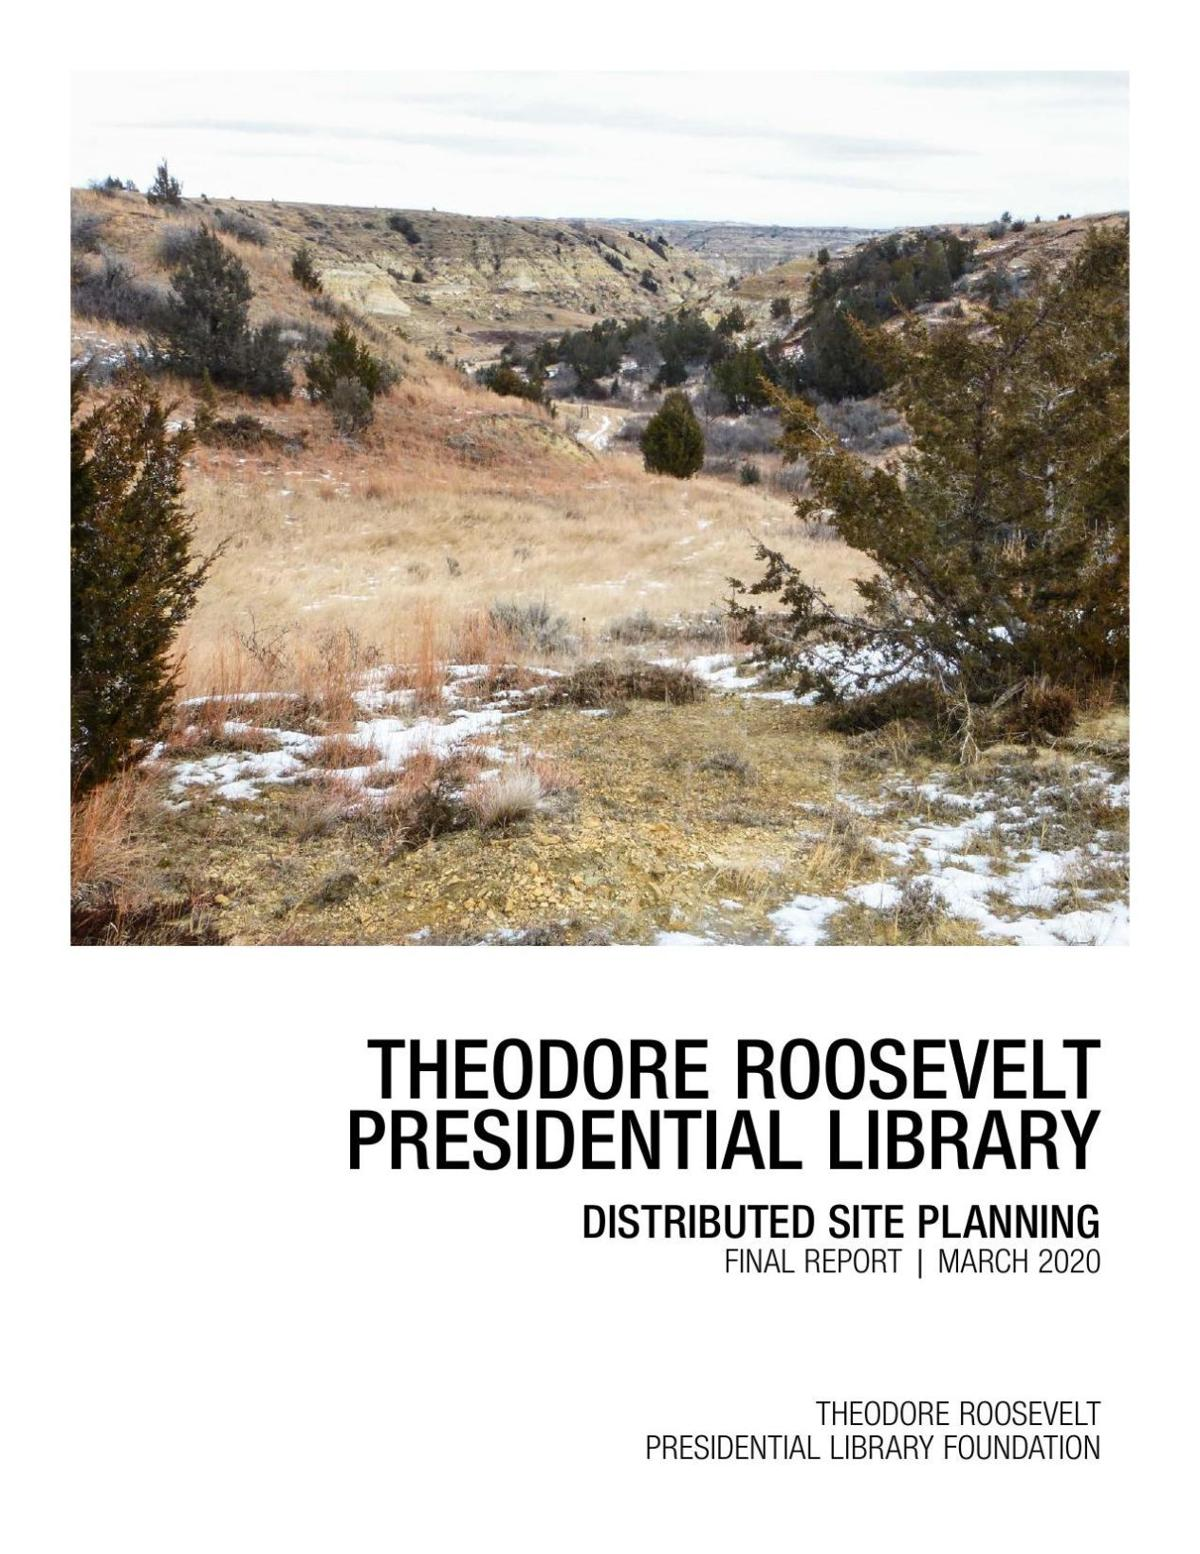 Theodore Roosevelt Presidential Library distributed site planning